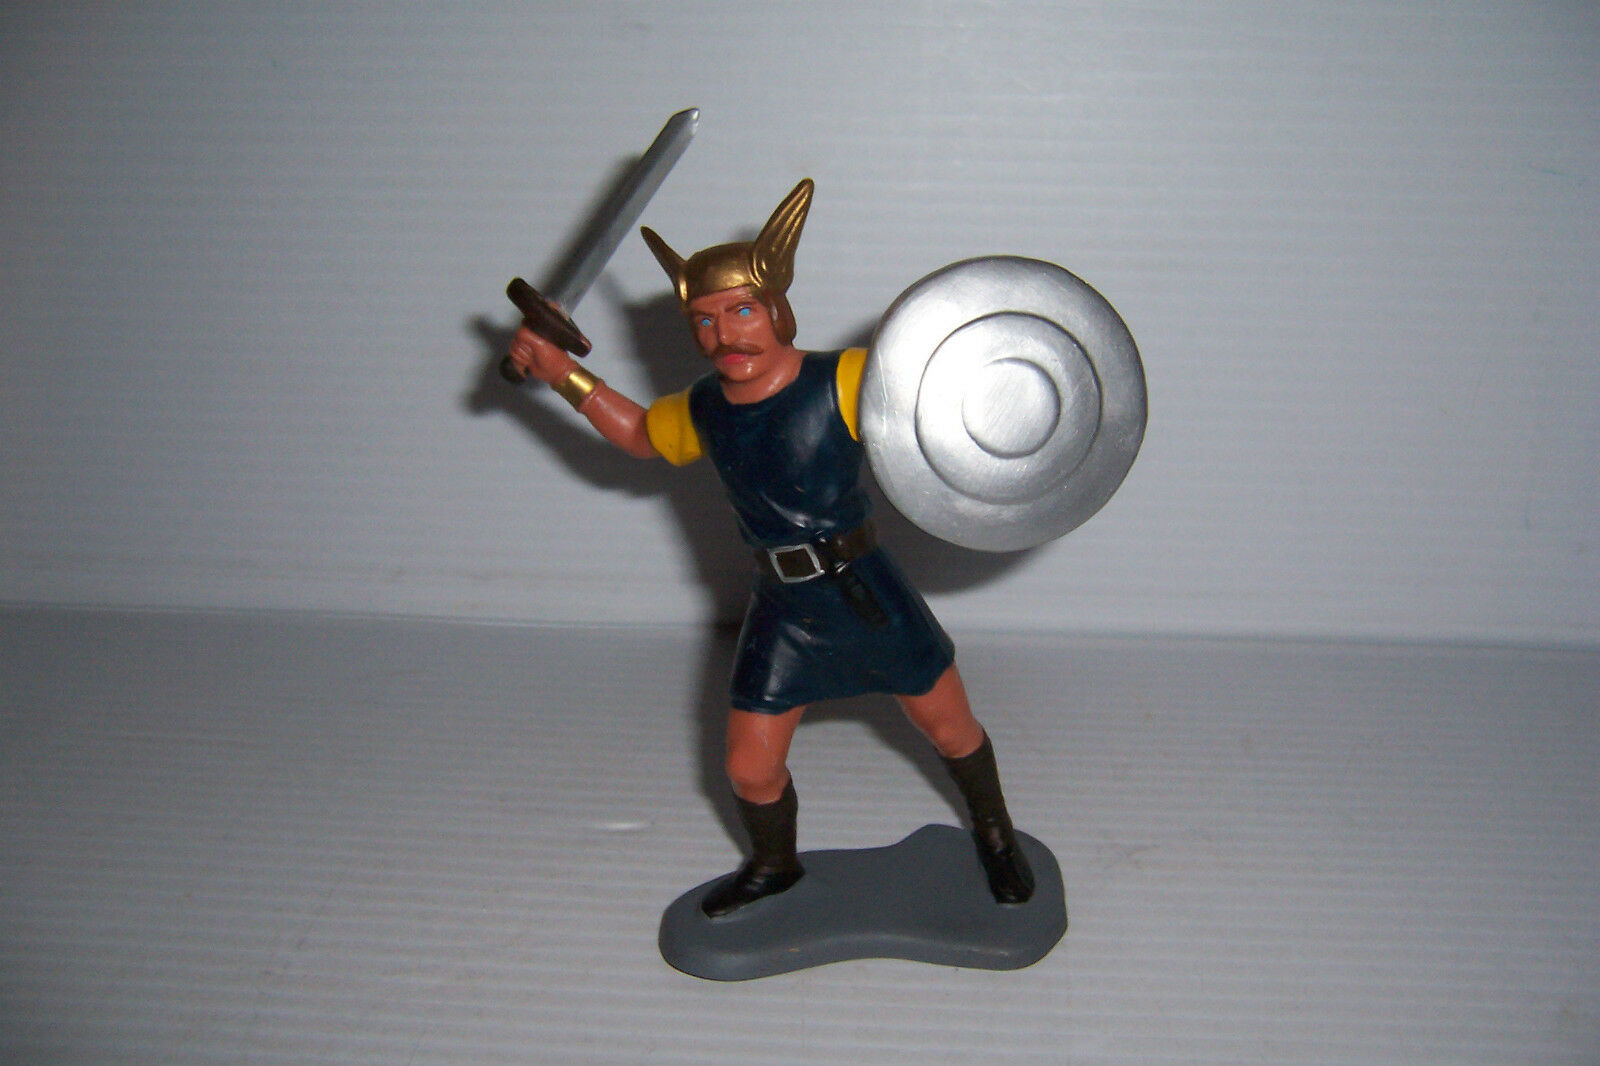 VINTAGE 1963 LOUIS MARX & CO VIKINGS  6  FIGURE WITH SWORD